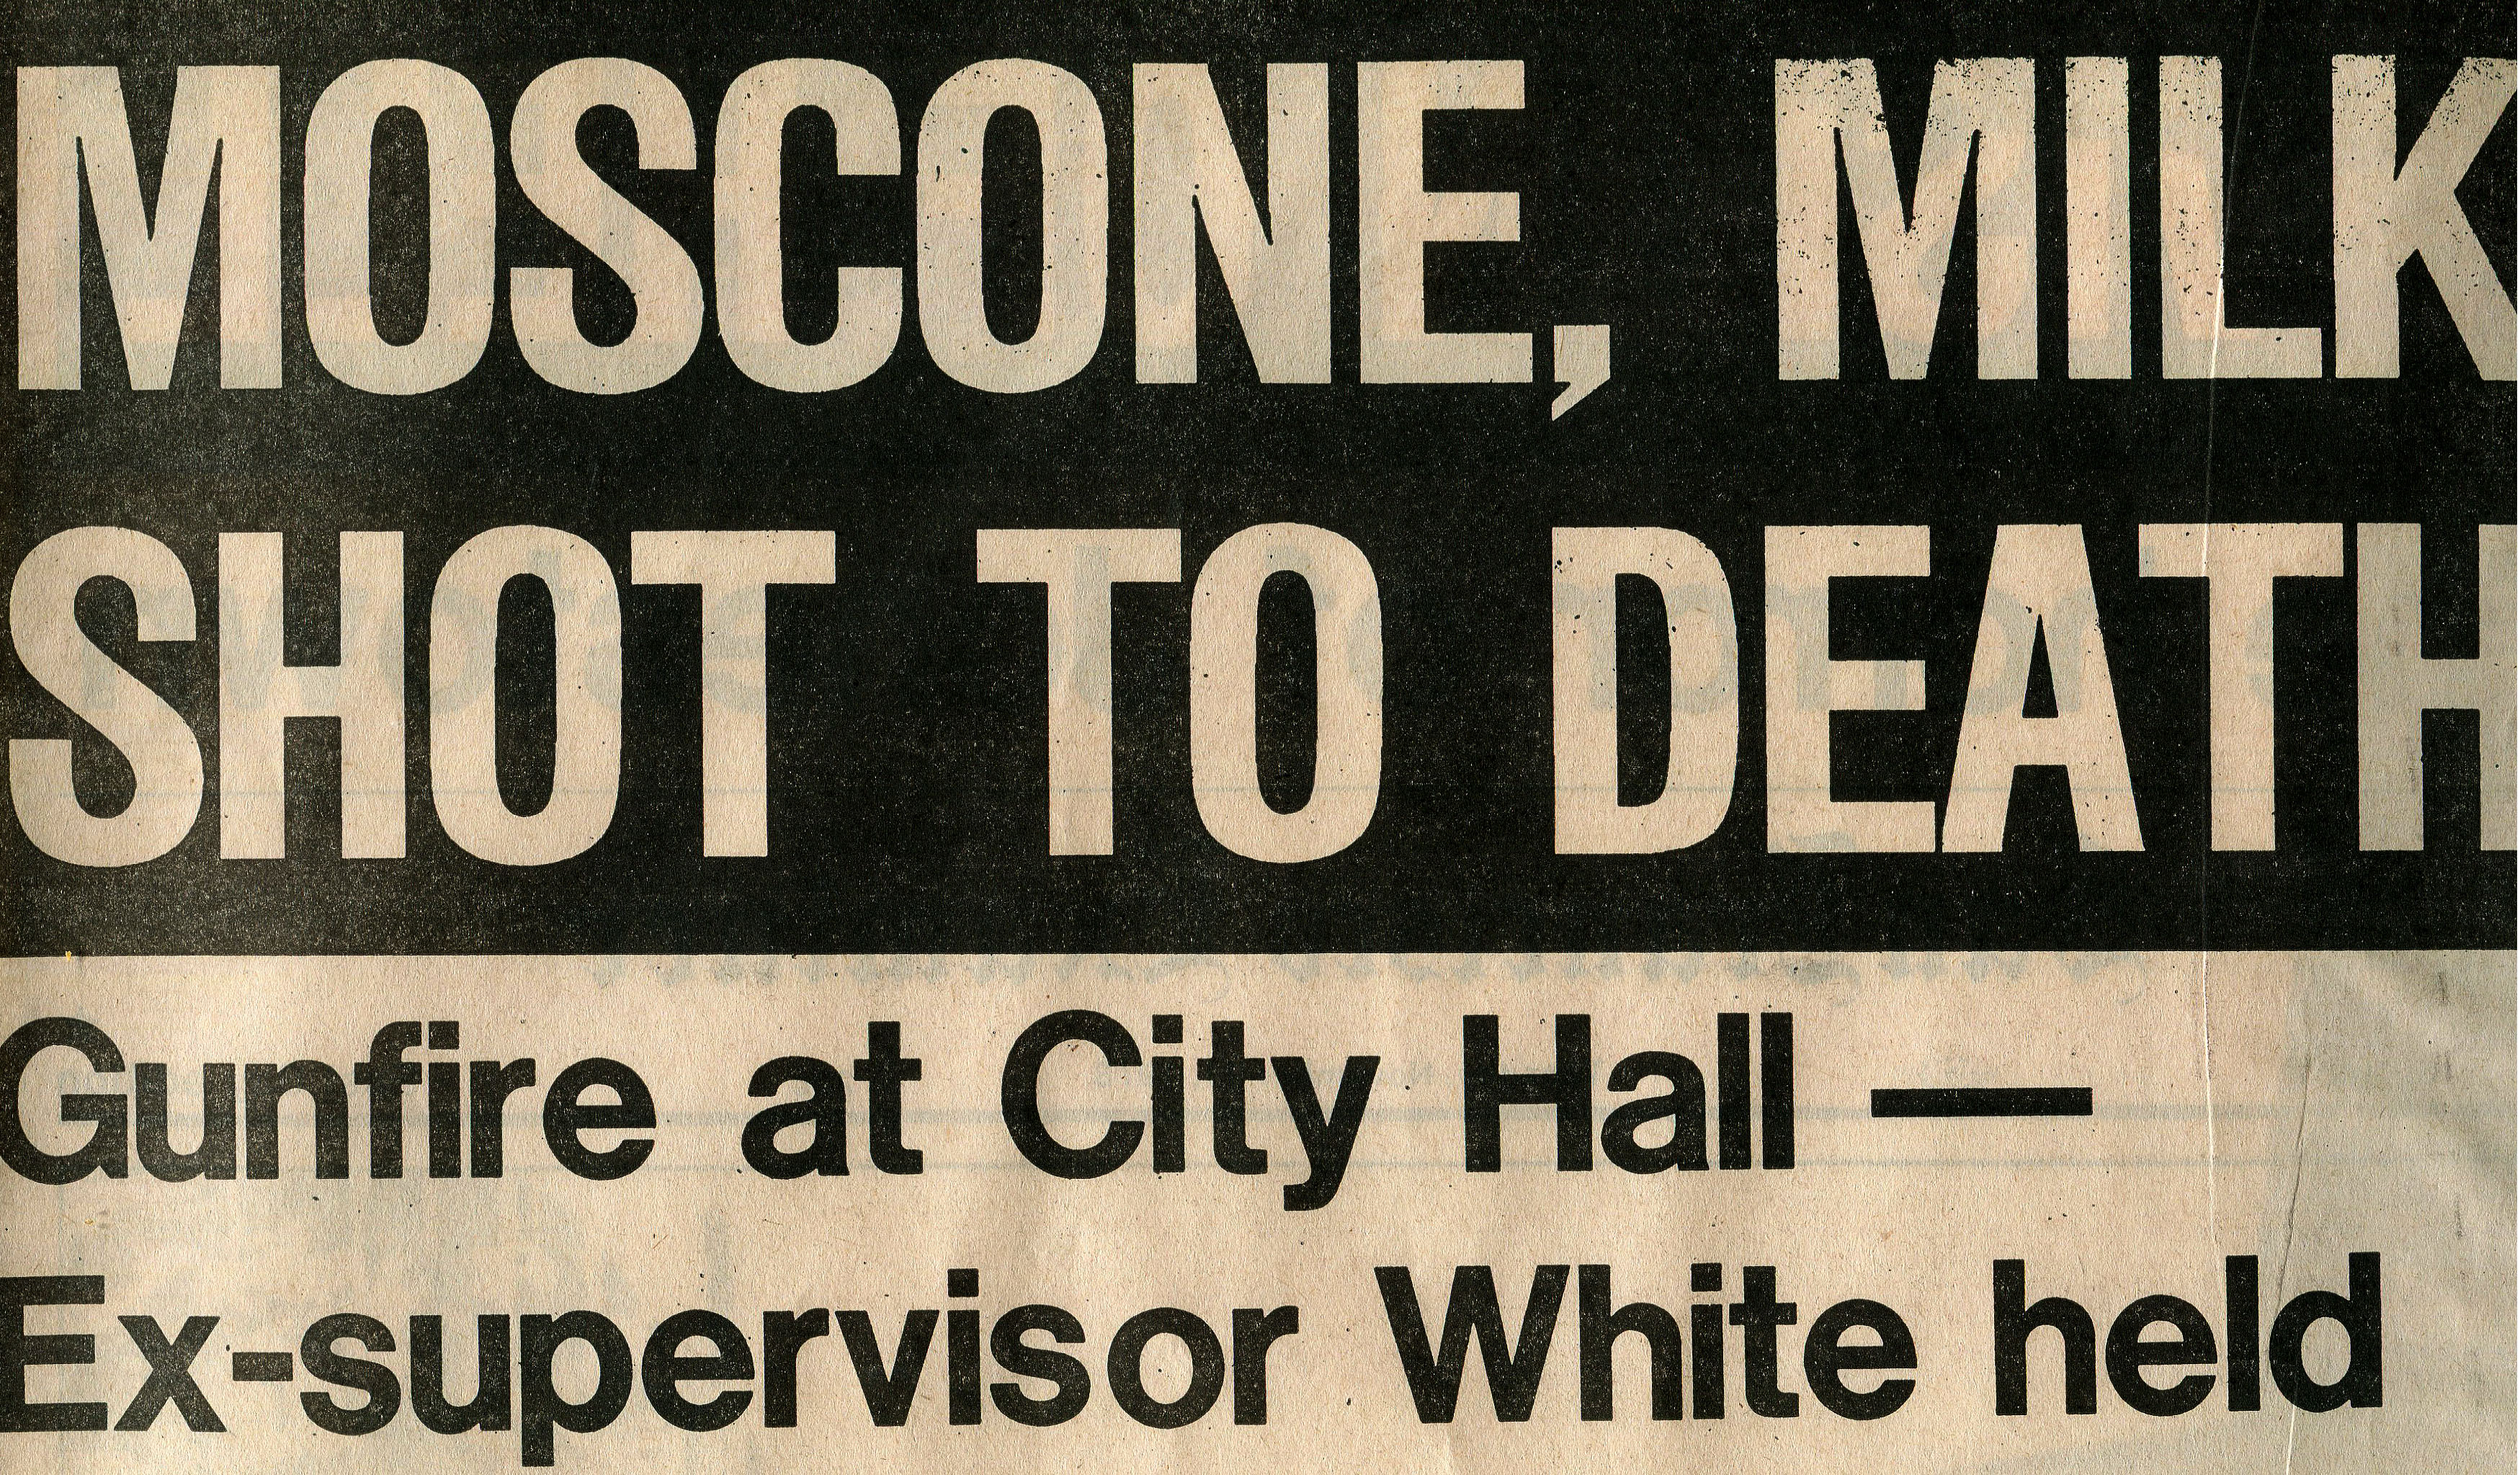 mOSCONE AND MILK MURDER